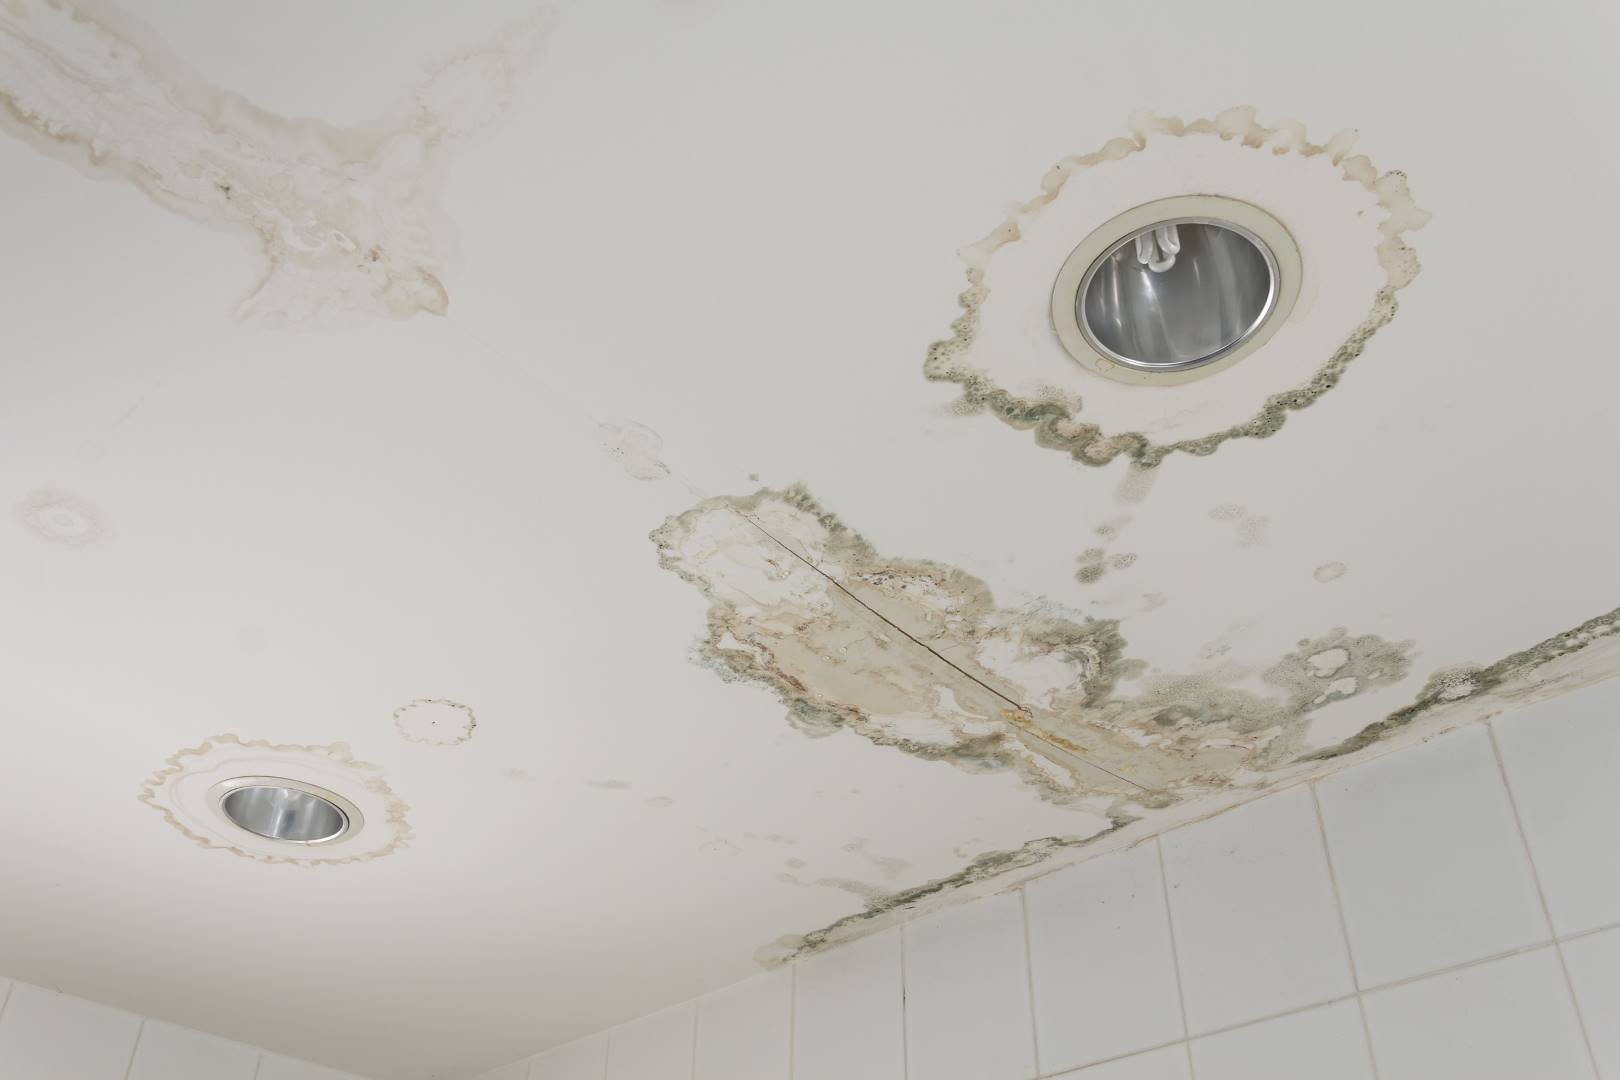 Water leaking from ceiling when water damage goes untreated.